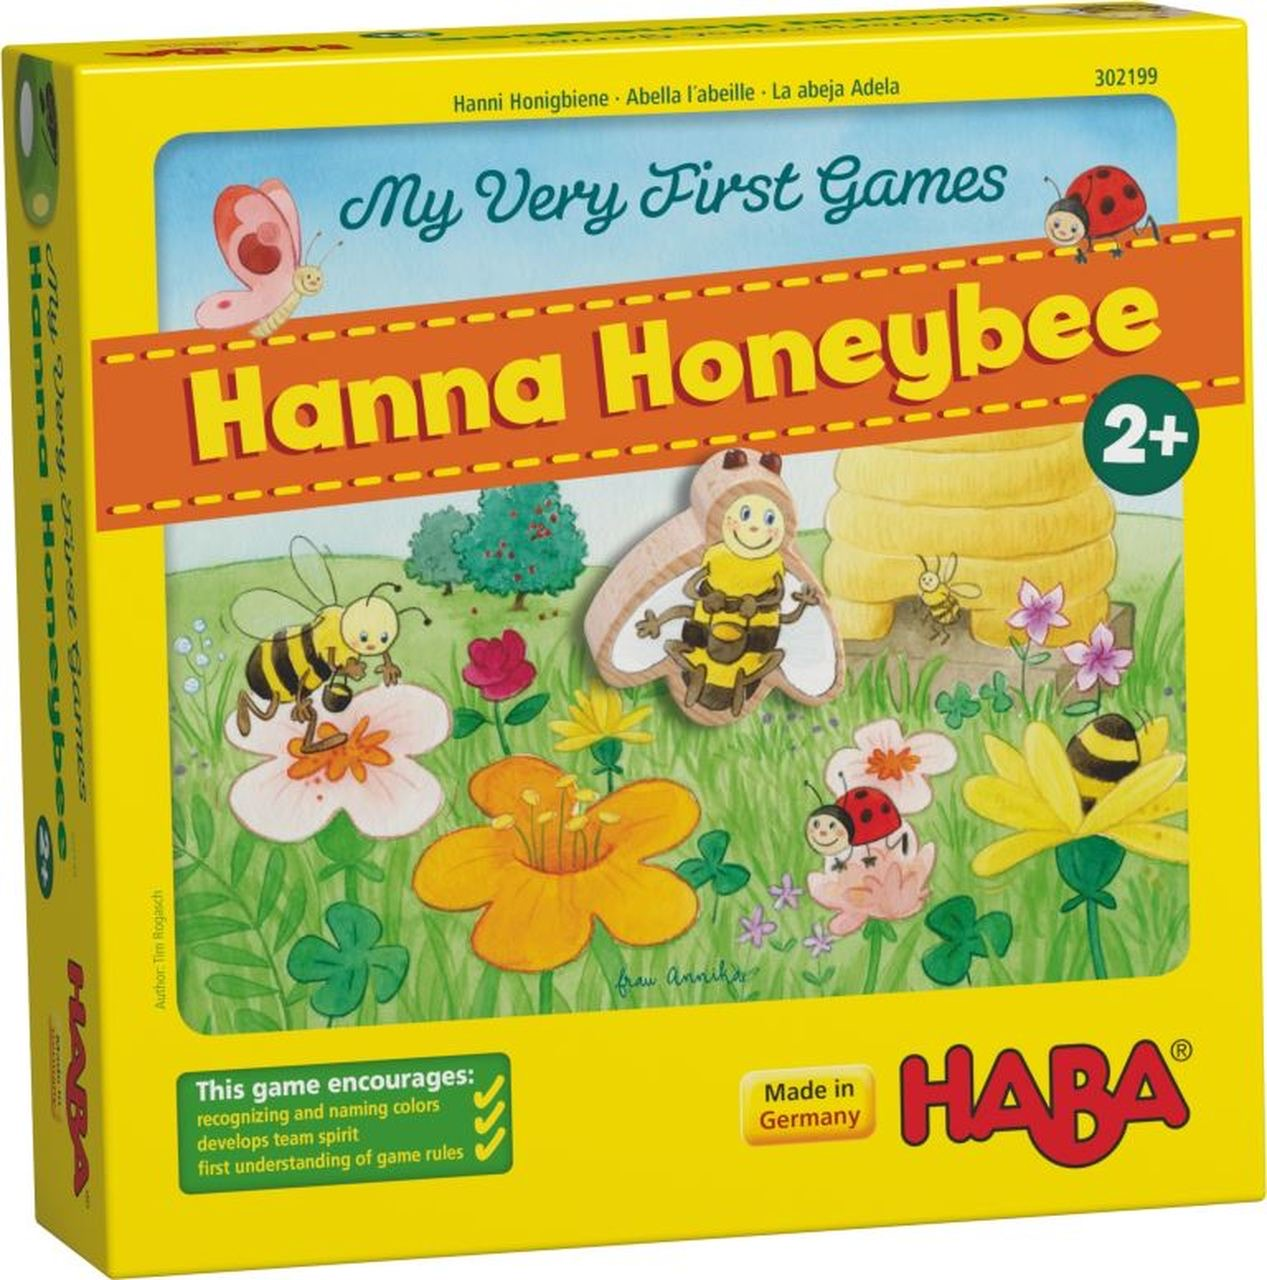 HABA Hanna Honeybee Game